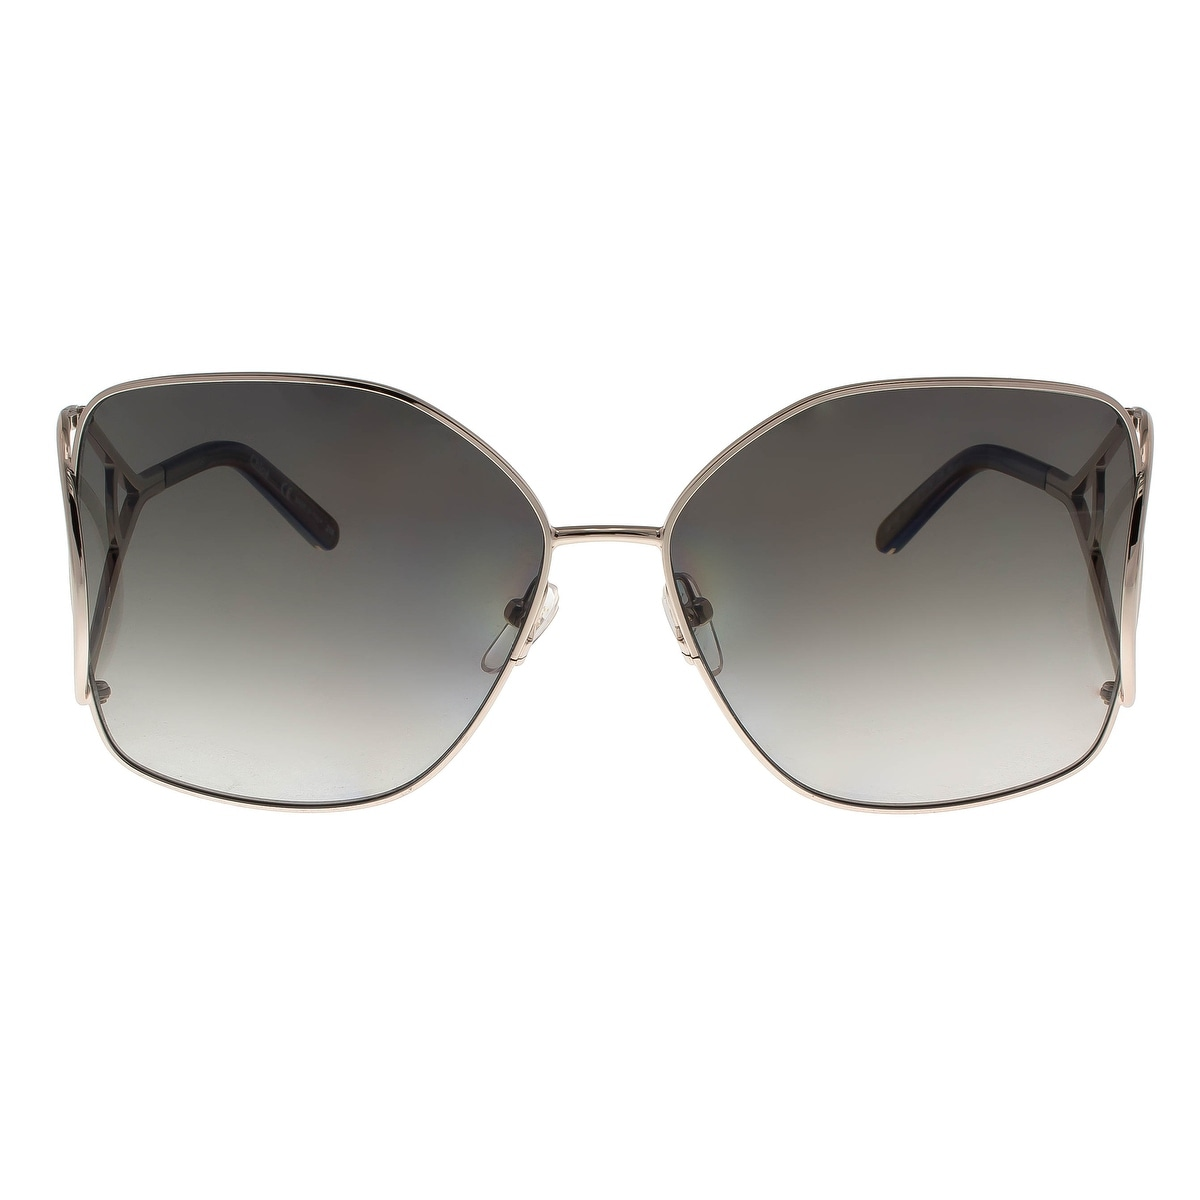 e8a052a8818c Shop Chloe CE135 S 744 Light Gold Grey Butterfly Sunglasses - 63-15-135 -  Free Shipping Today - Overstock - 26290679